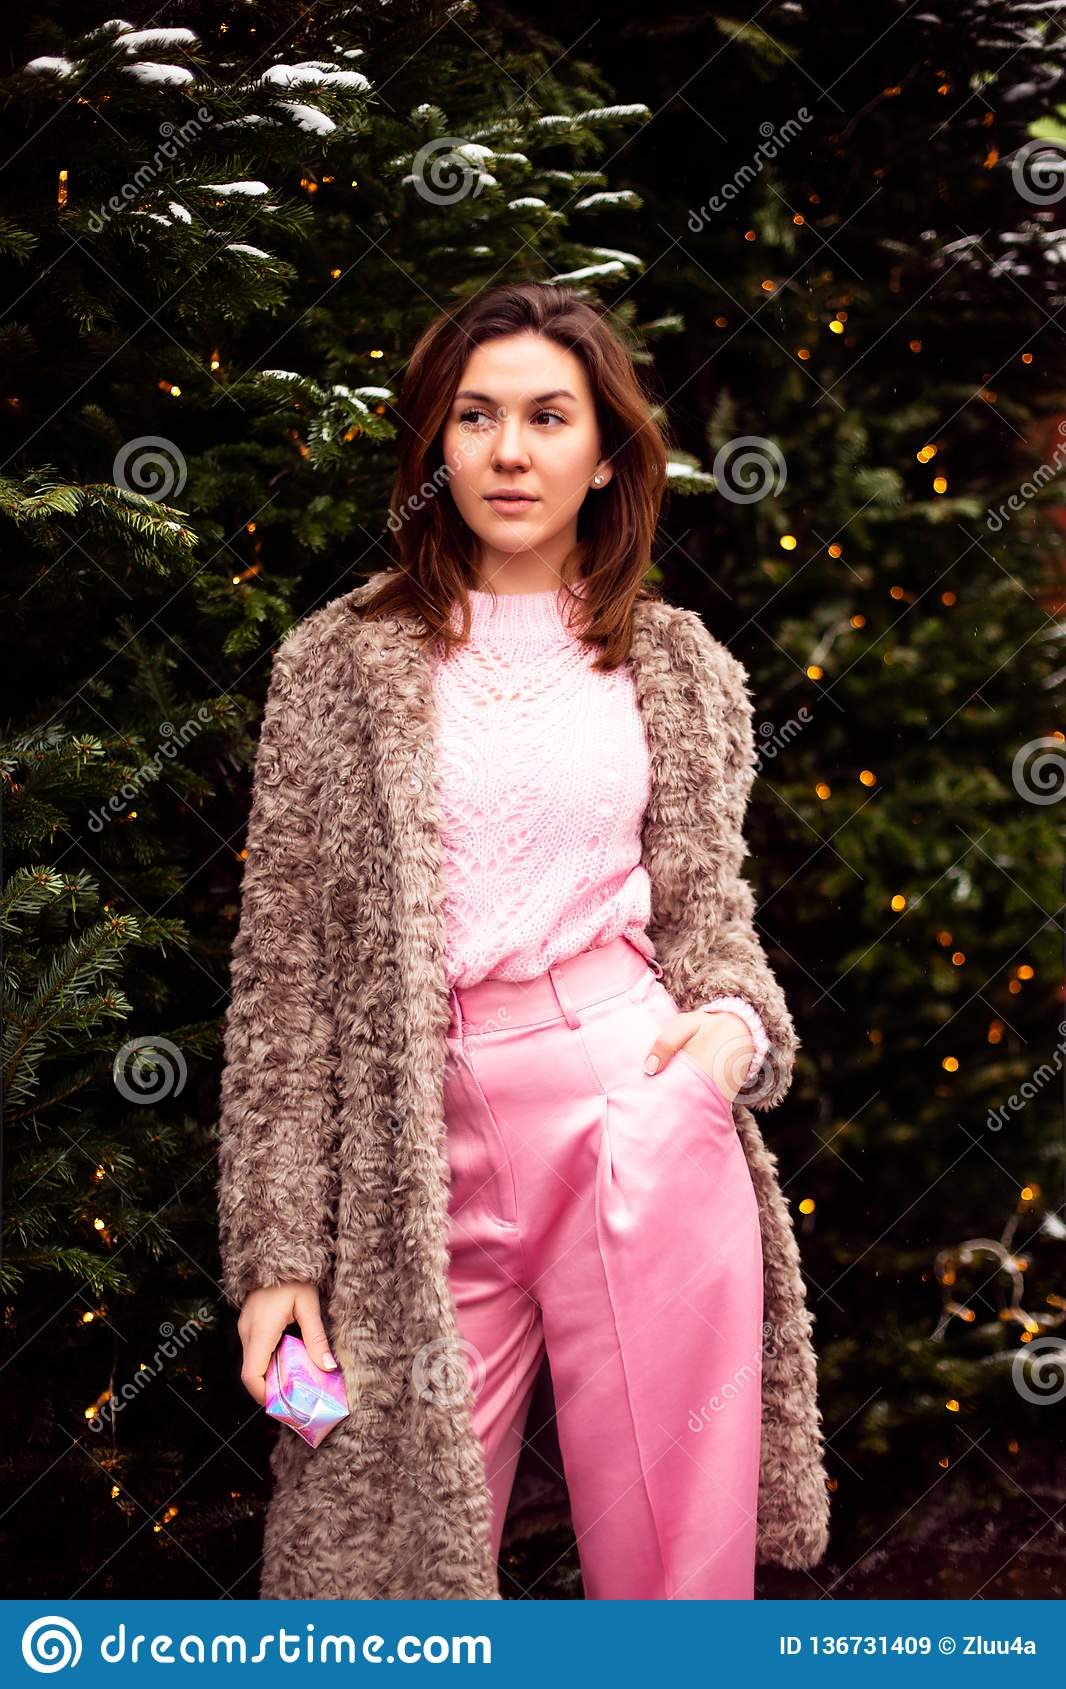 Young woman in eco fur and pink clothes walking on the Christmas decorated street